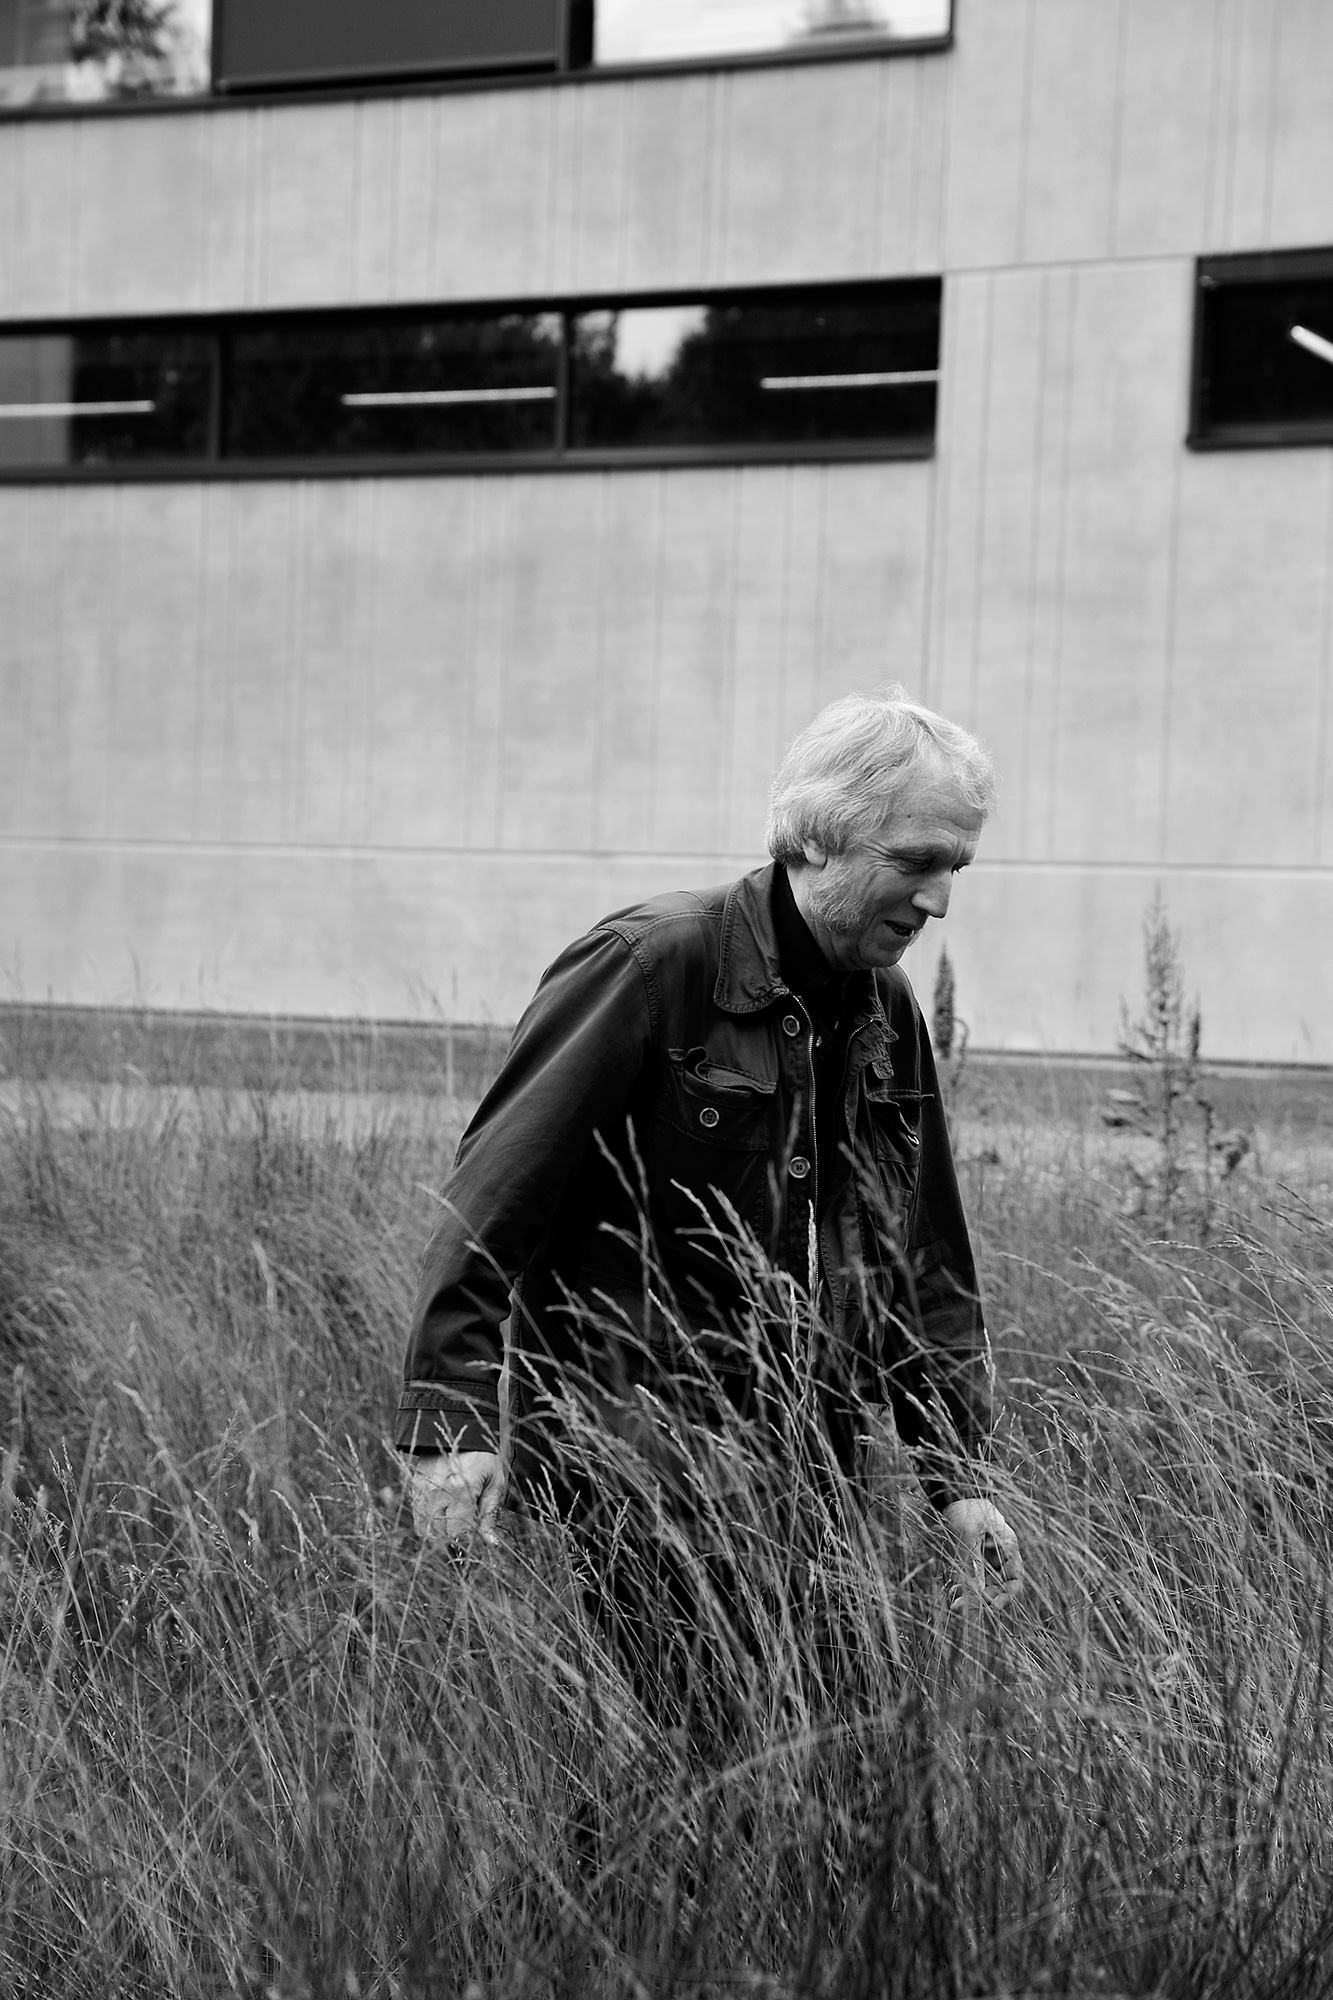 A man walking in high grass in front of a big building.